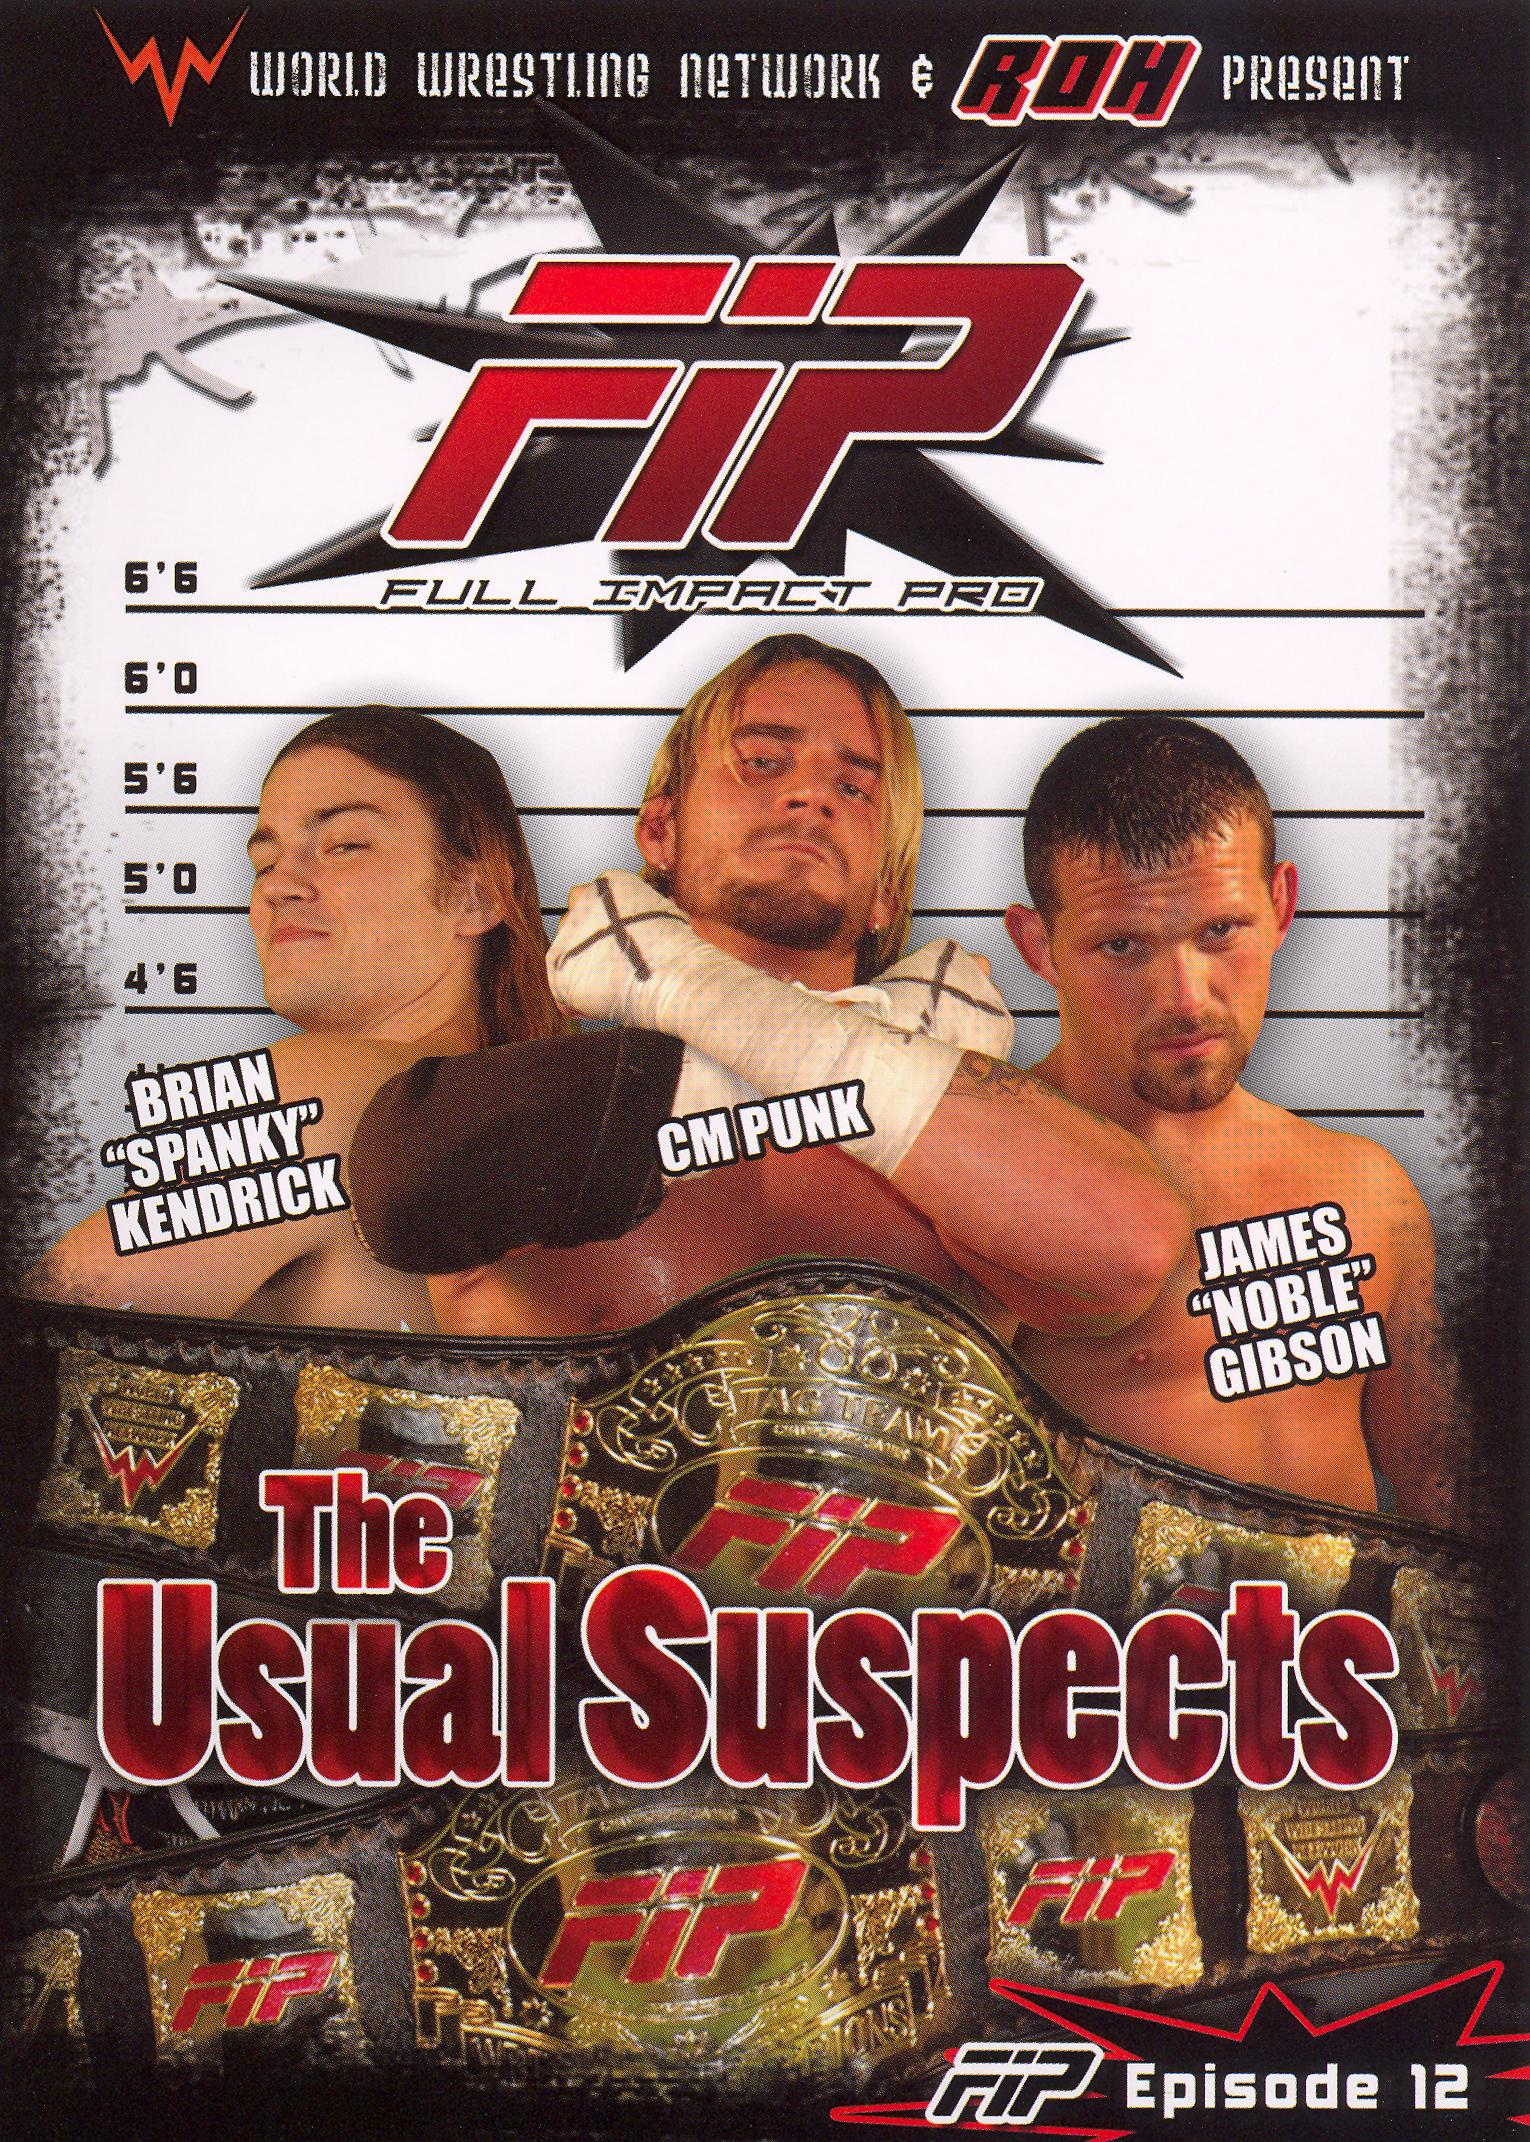 World Wrestling Network Presents: FIP - The Usual Suspects